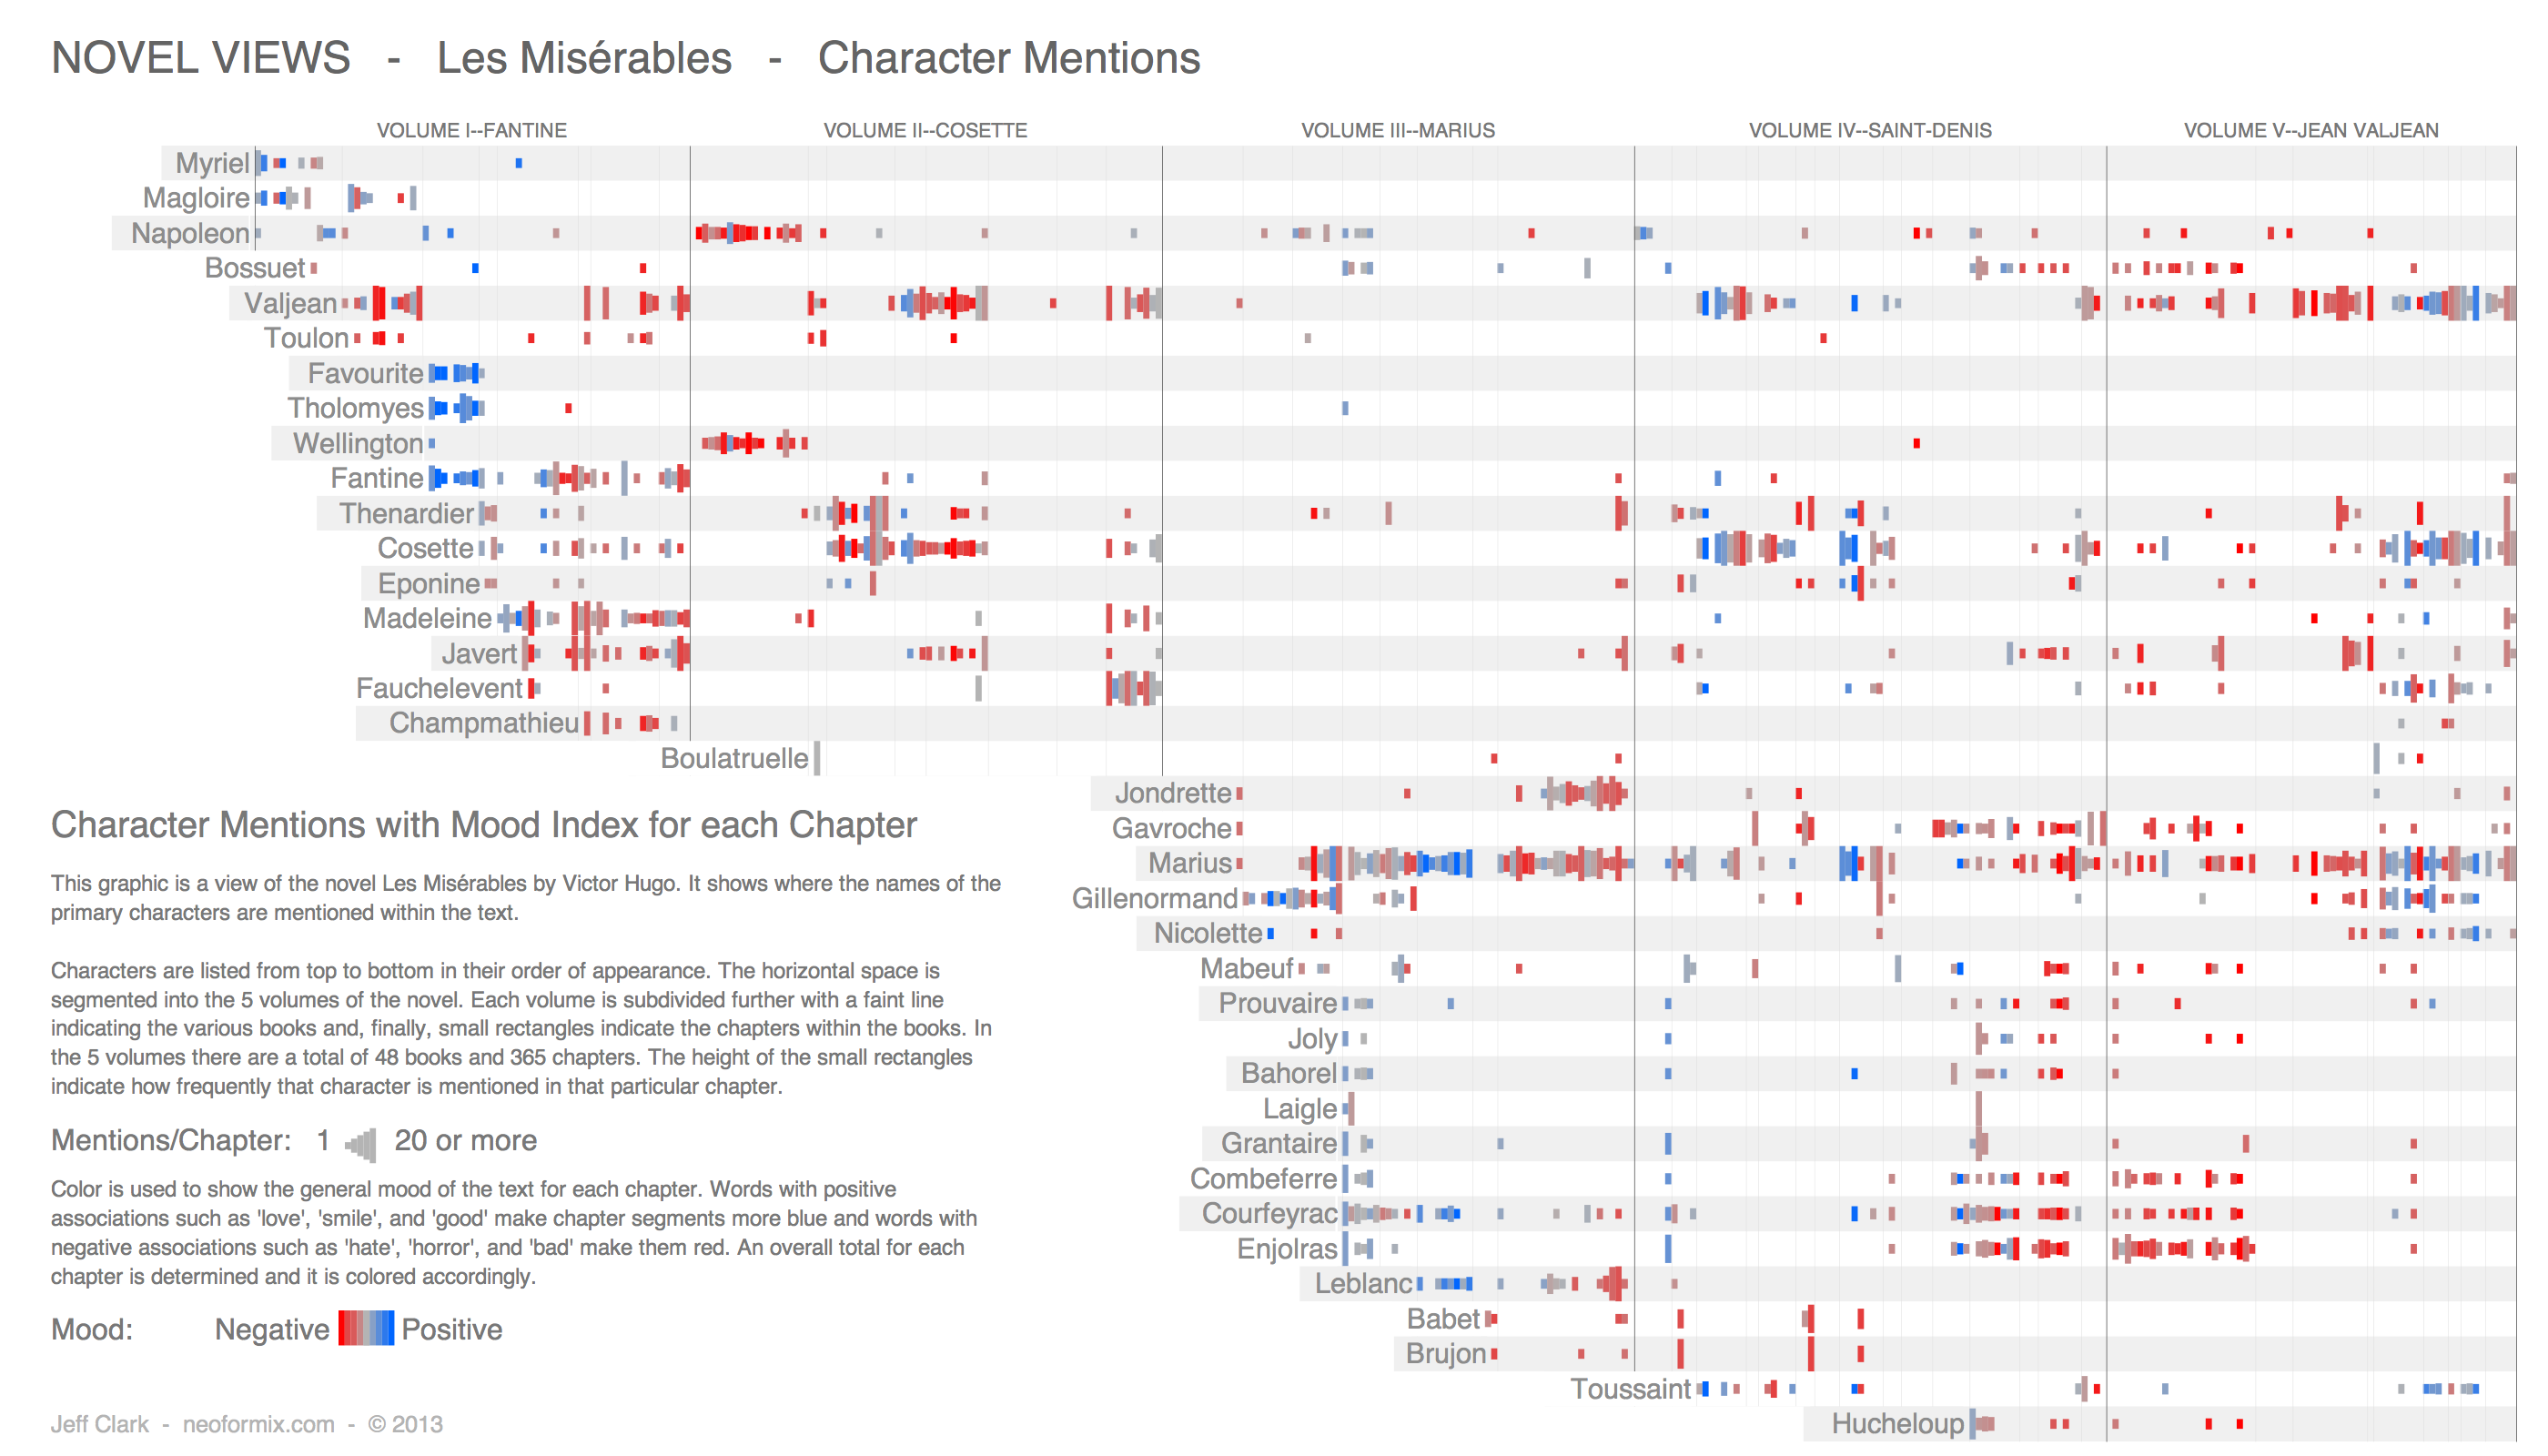 les miserables archives the paris review the paris review here is a mood index chart